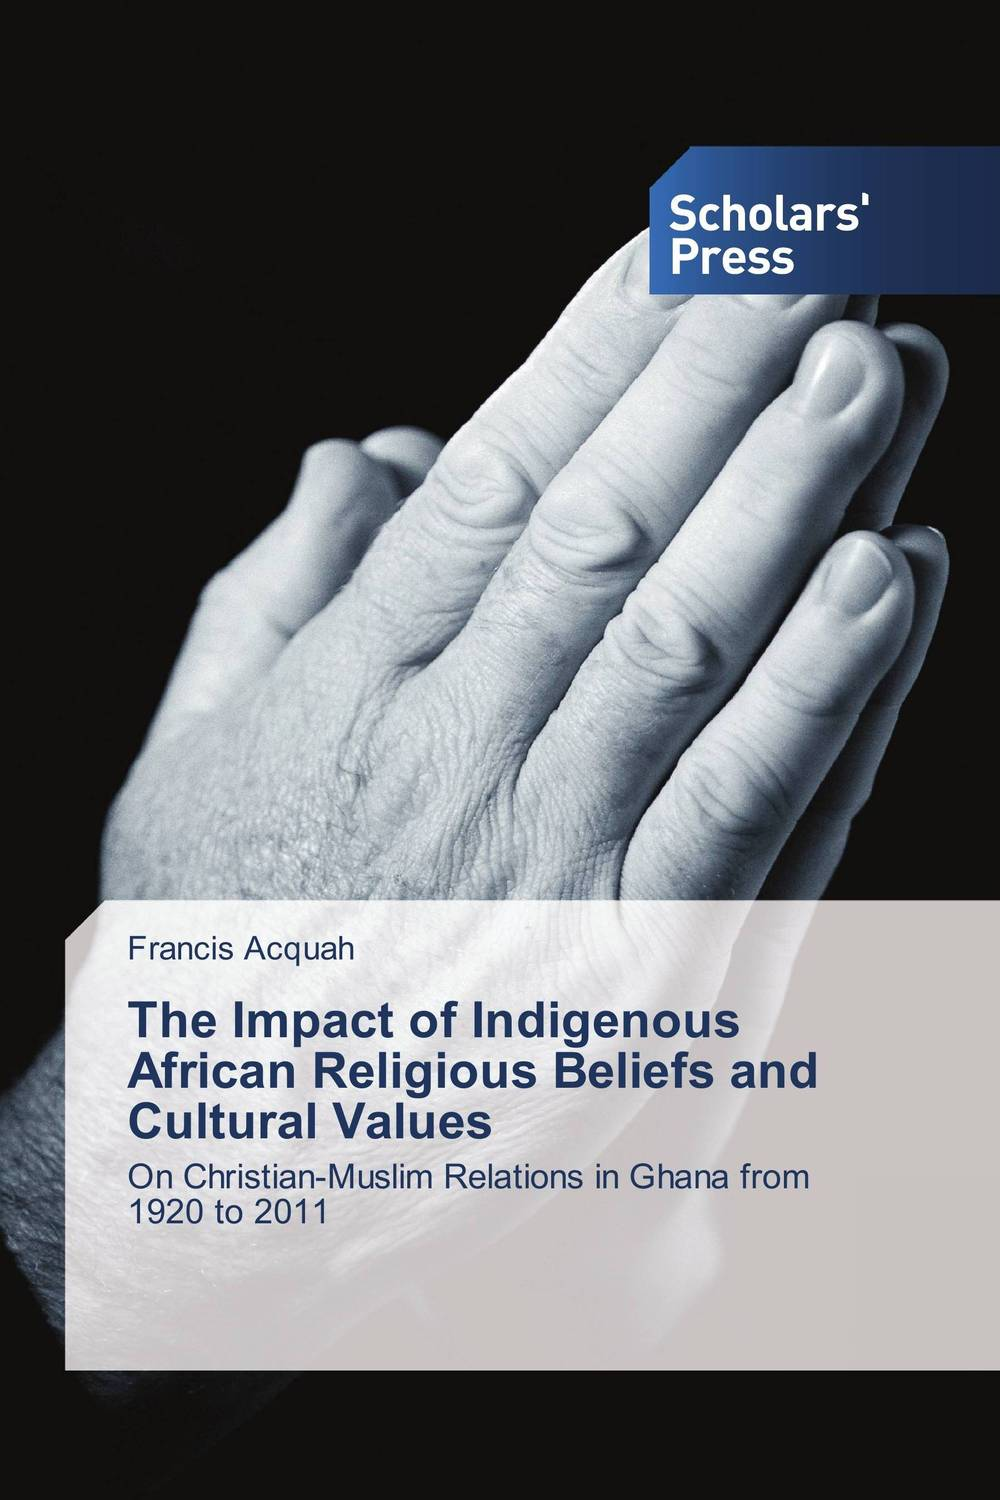 The Impact of Indigenous African Religious Beliefs and Cultural Values folk media and cultural values among the igala